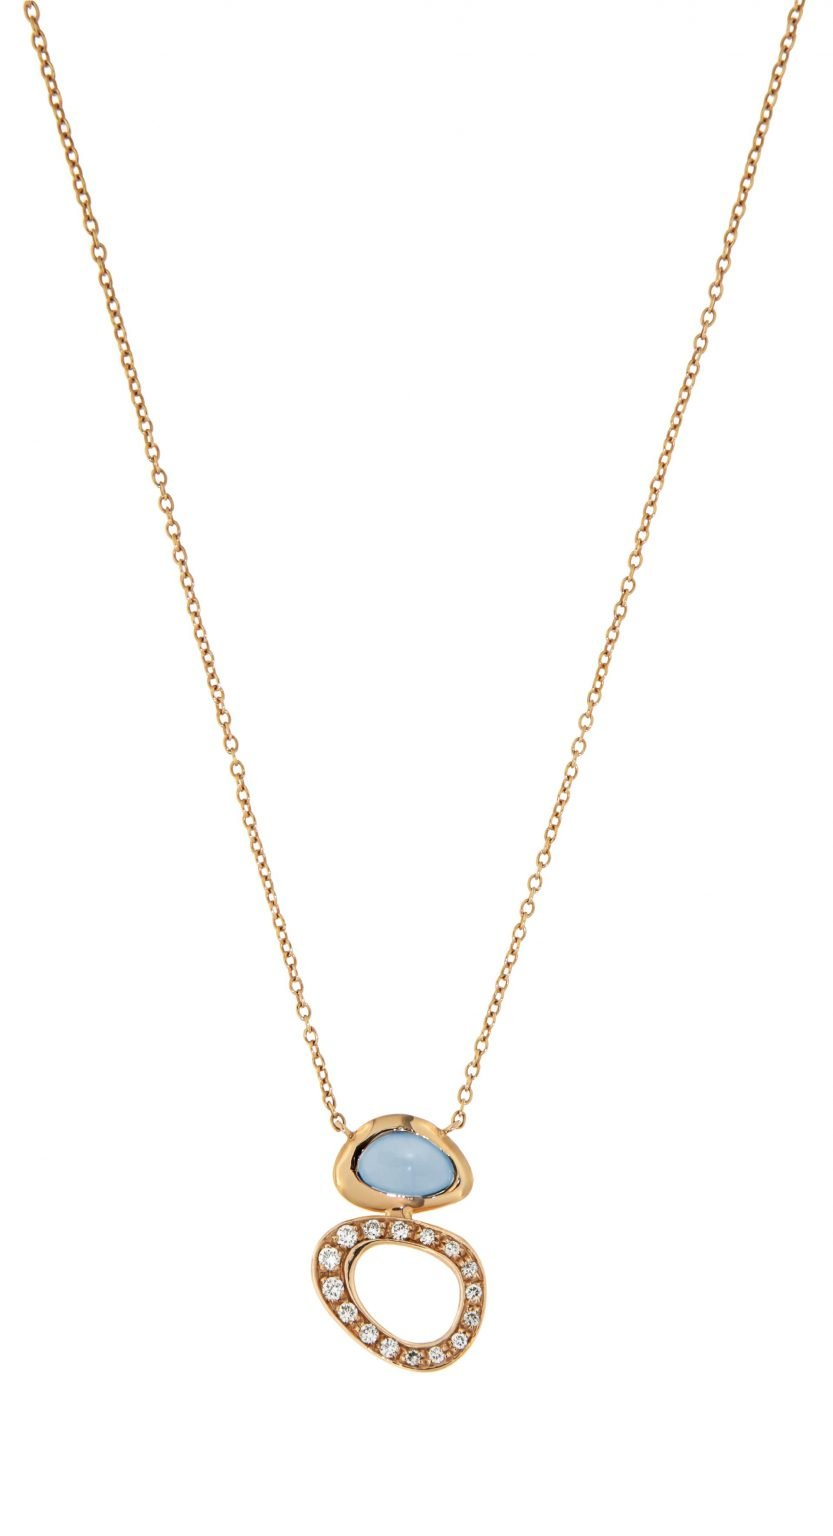 18 kt pink gold pendant with London blue topaz